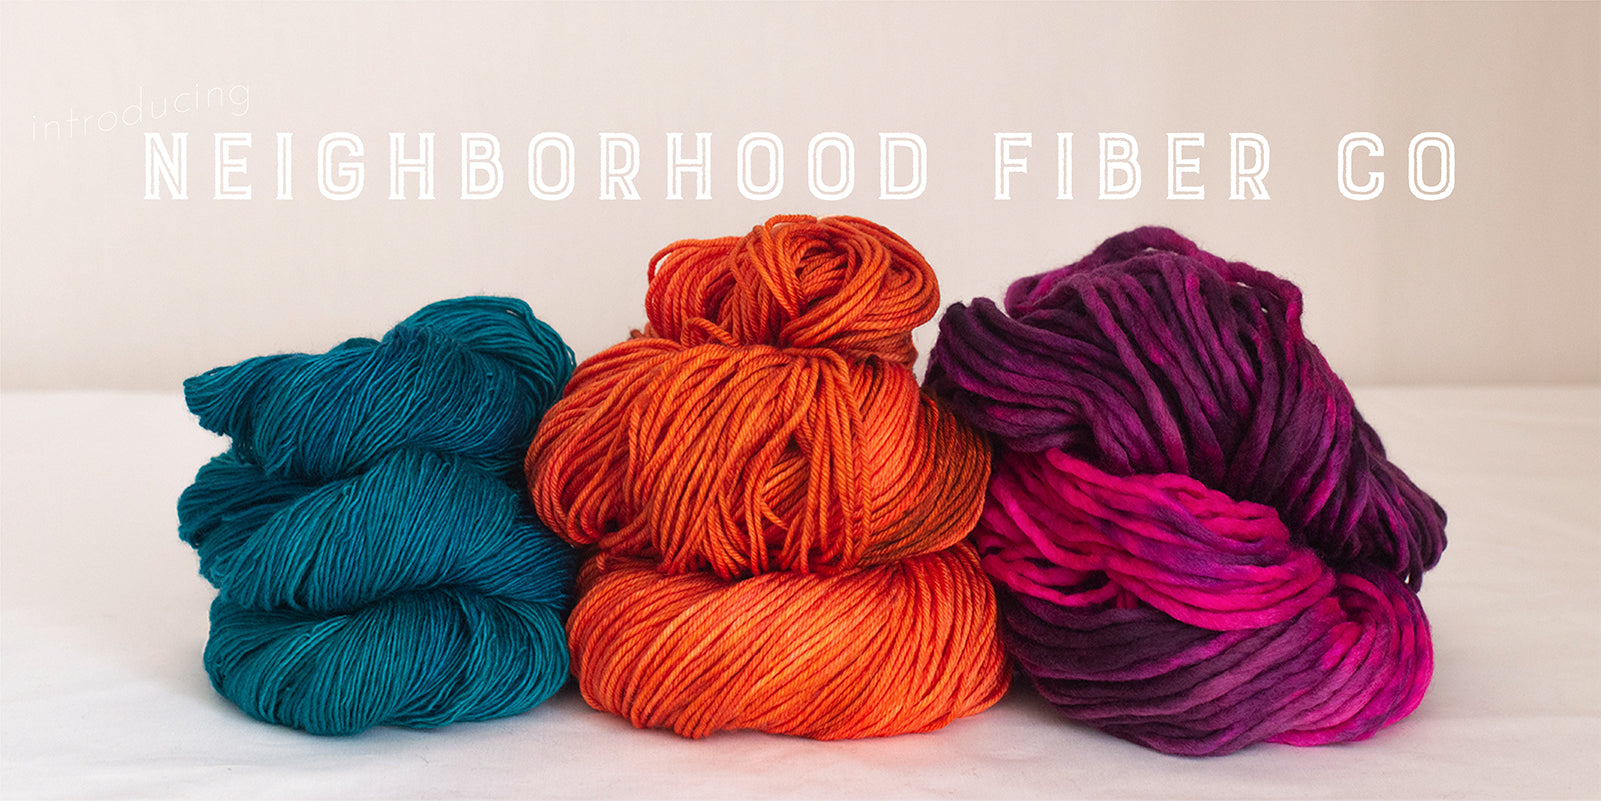 We are pleased to now carry Neighborhood Fiber Co!